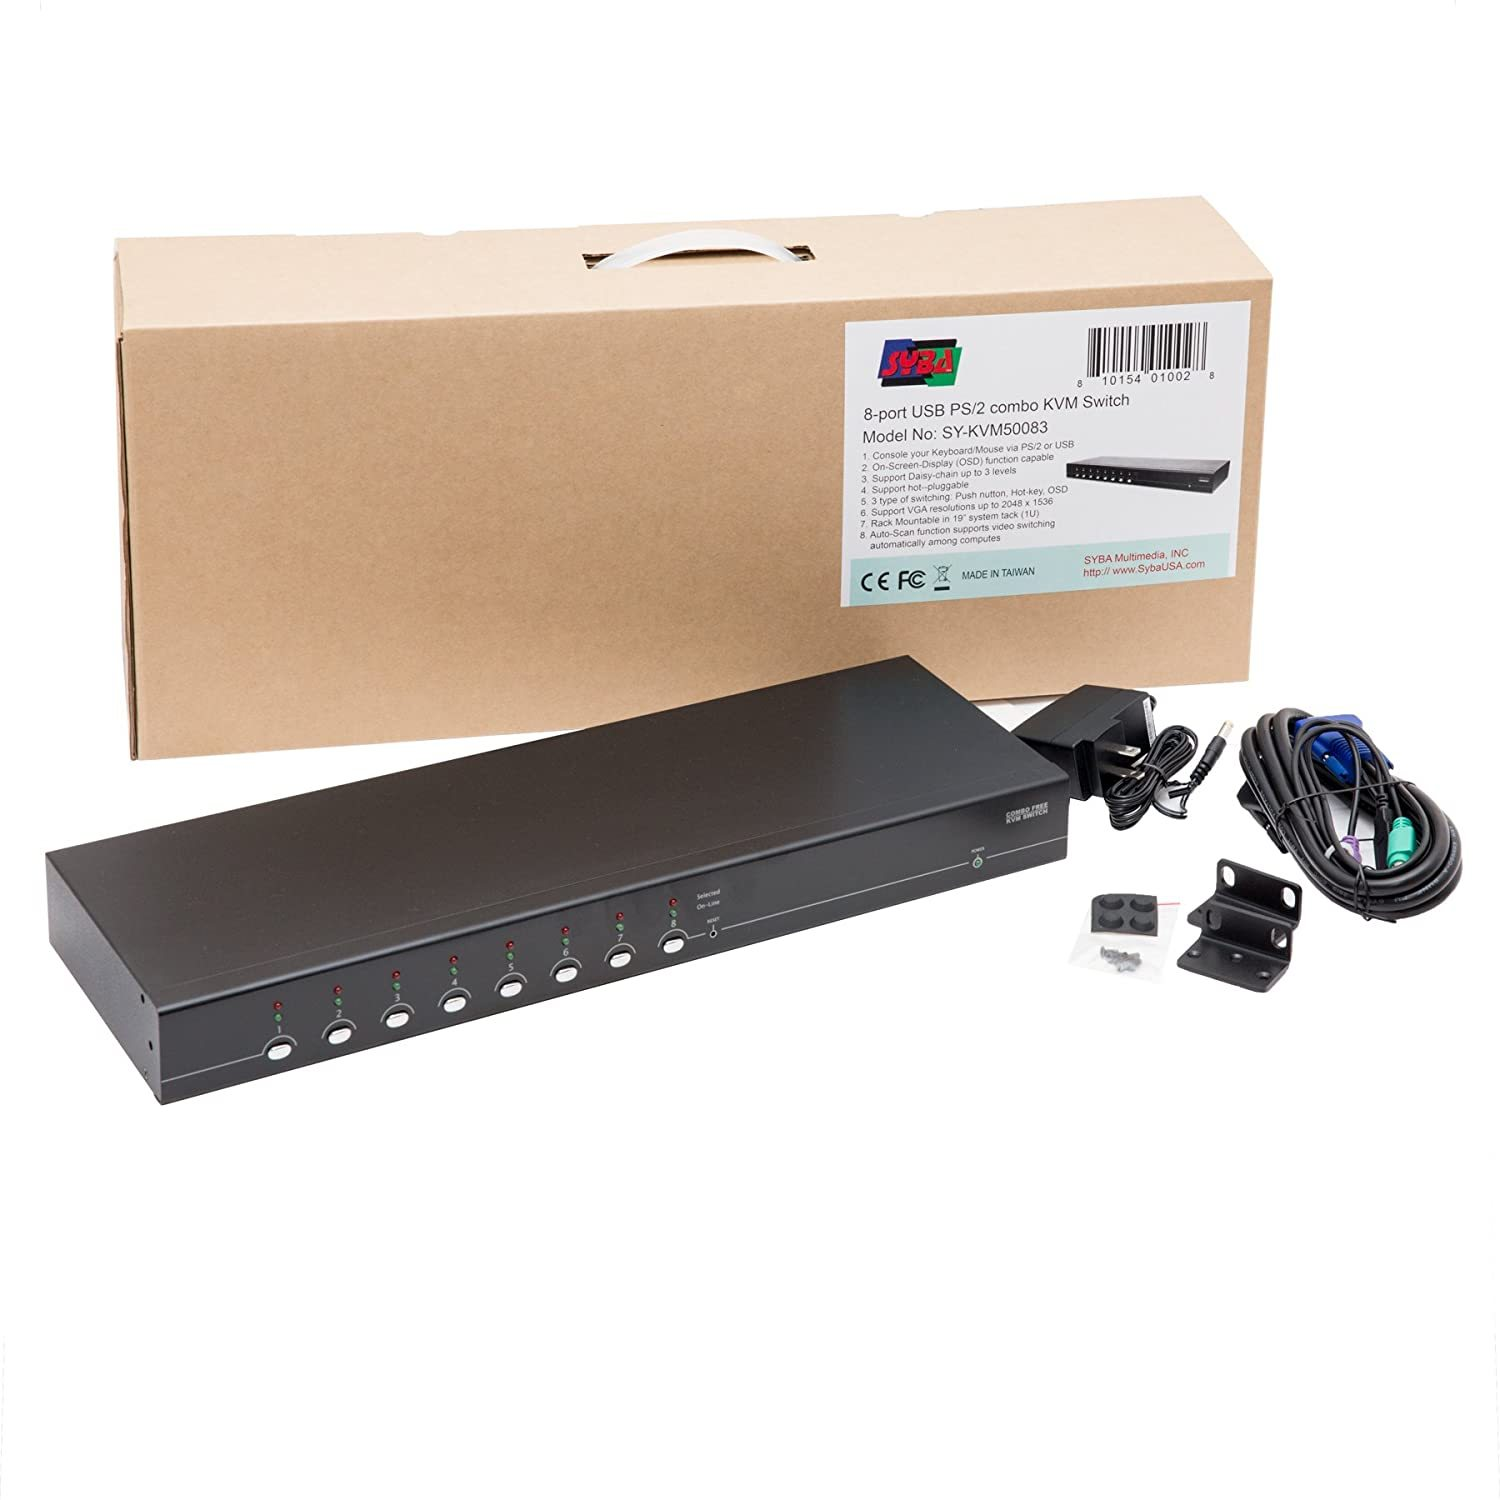 SY-KVM50083 8 Port VGA KVM Switch with USB and PS/2 Support